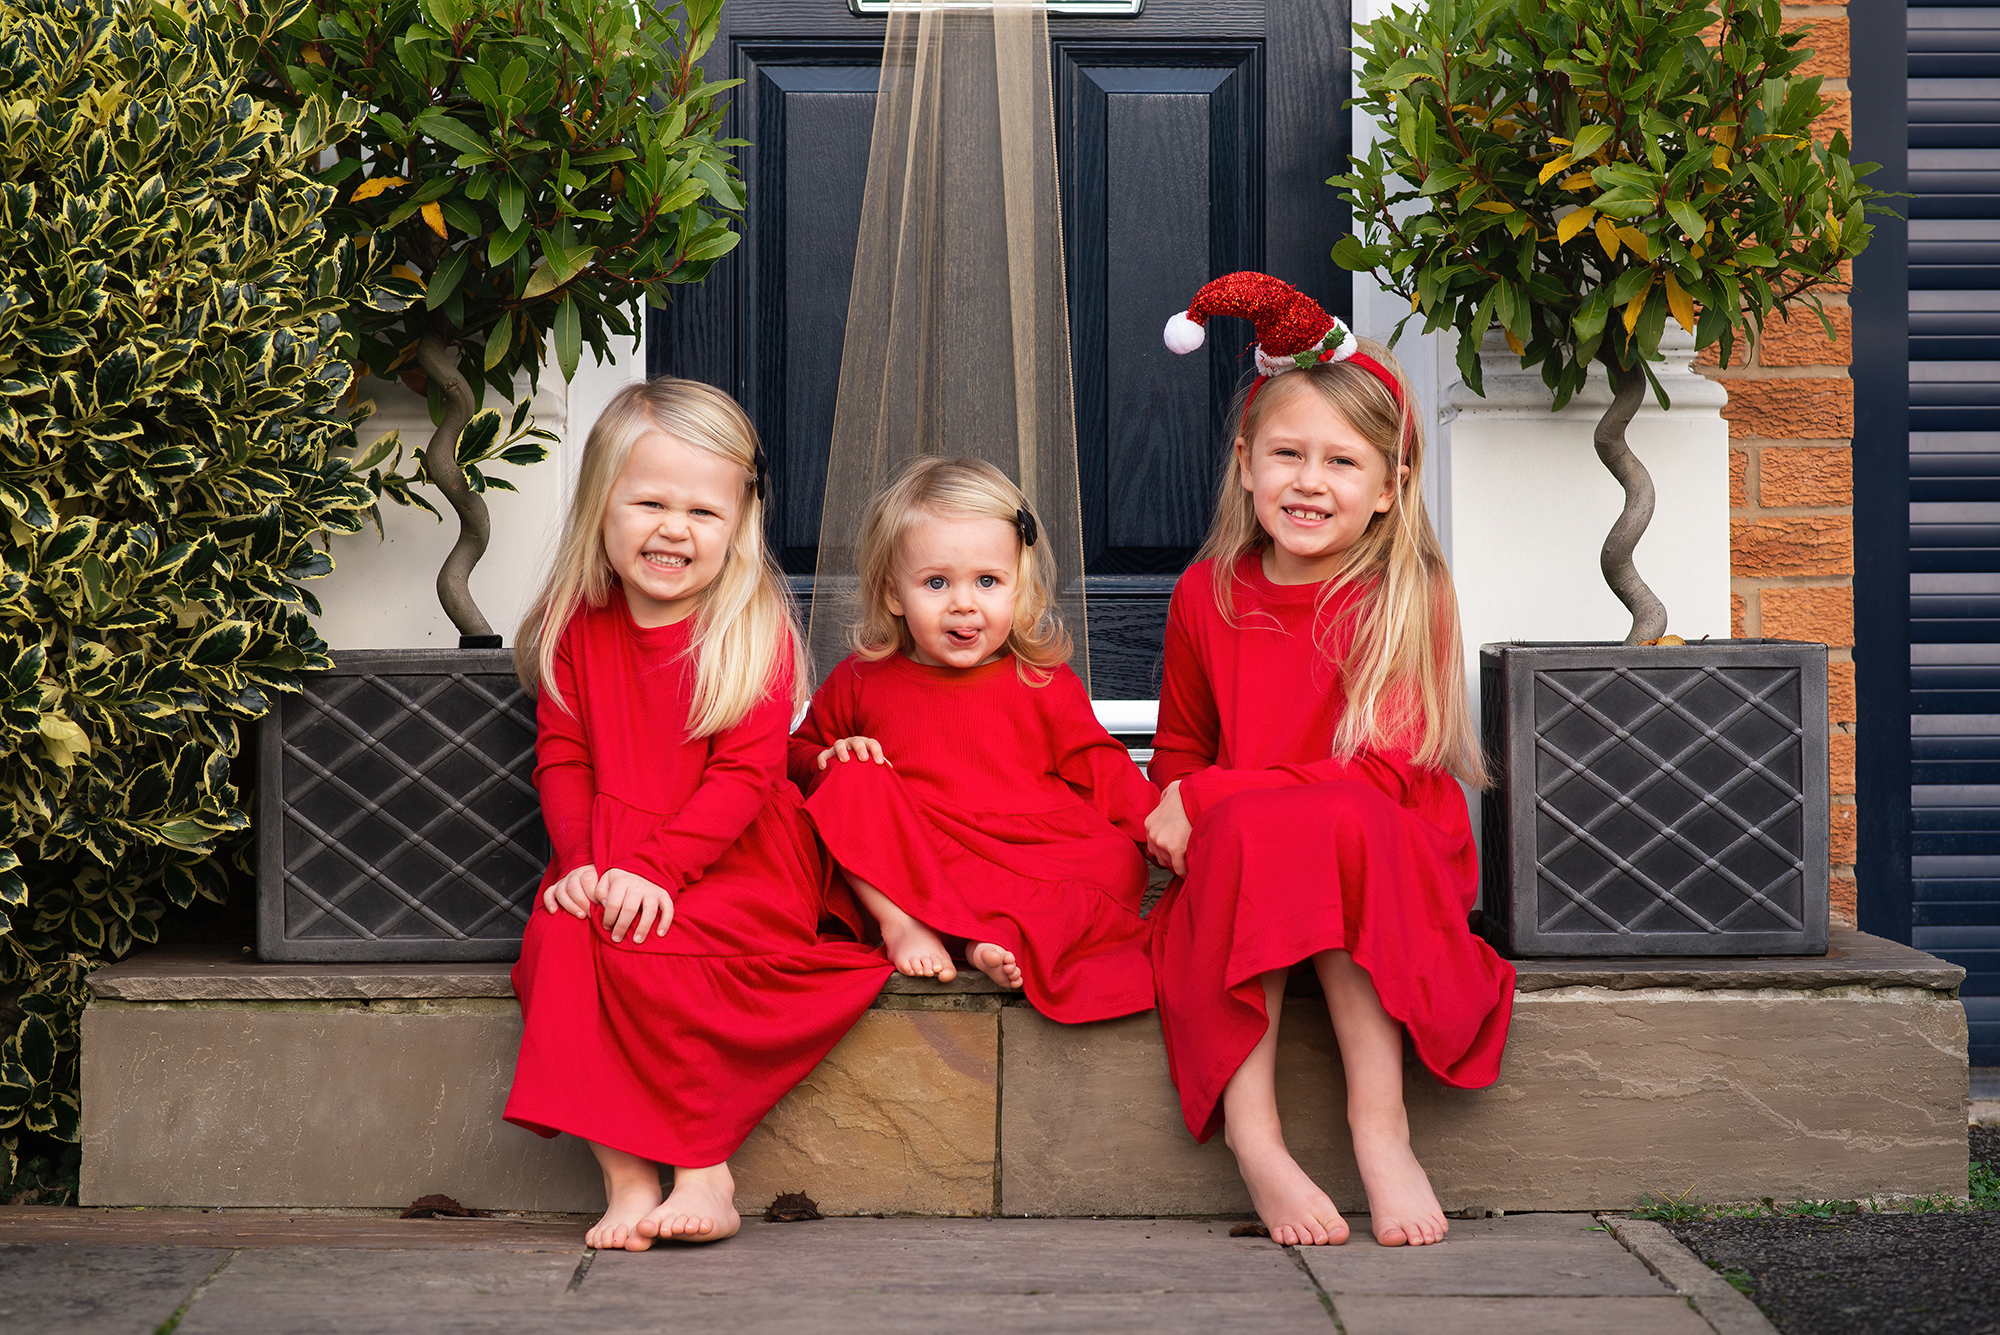 Family photographer Barnsley, girls at front step in red dresses